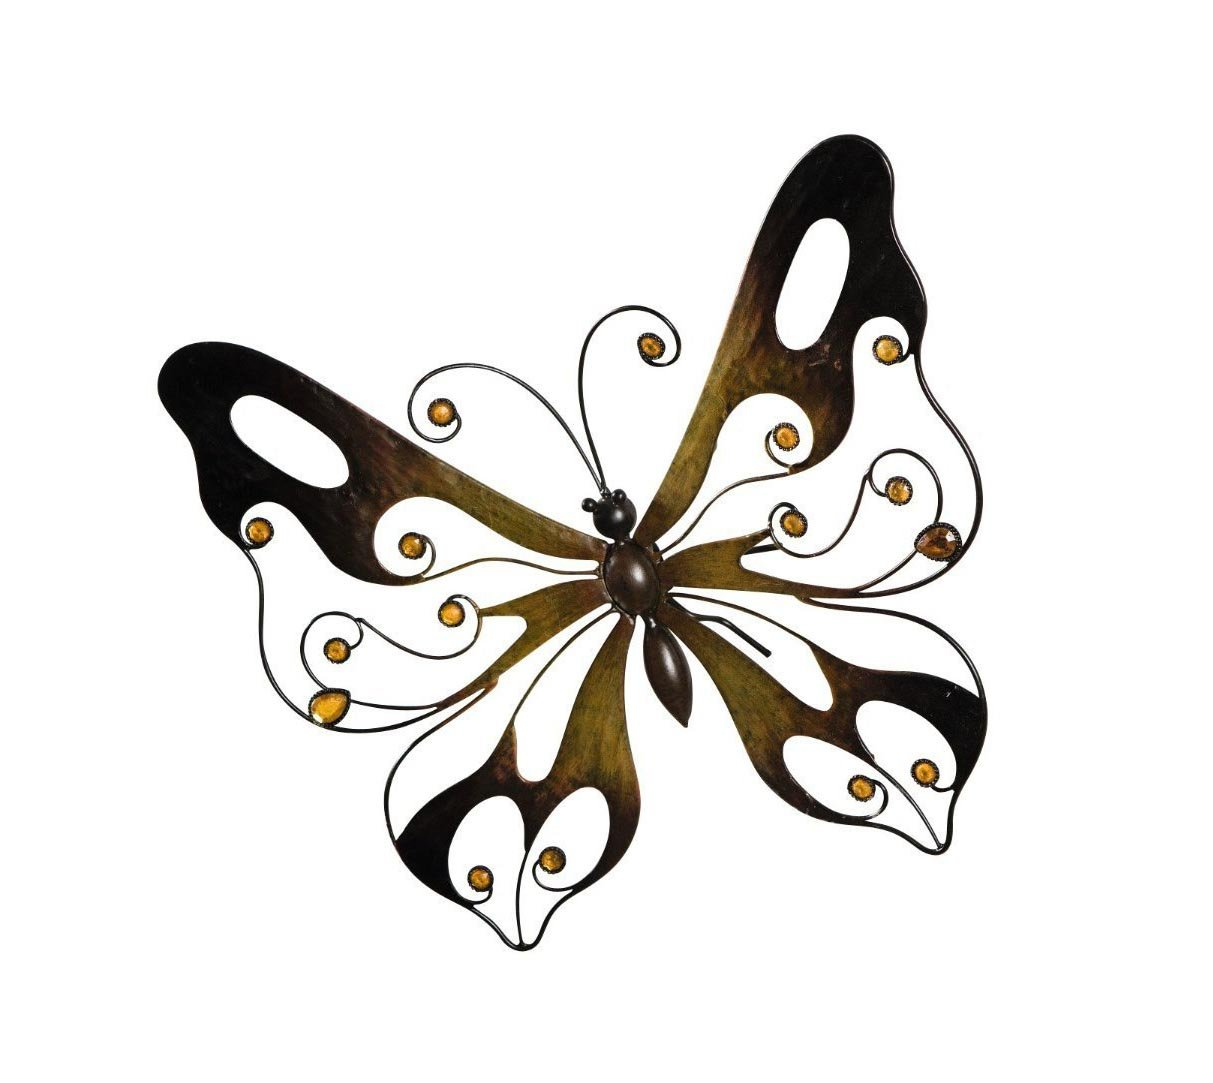 Metal Butterfly Wall Decor - Warm Brown Wall Art with Glass Pearls Product SKU: HD229089 by PSW - Wall Decor